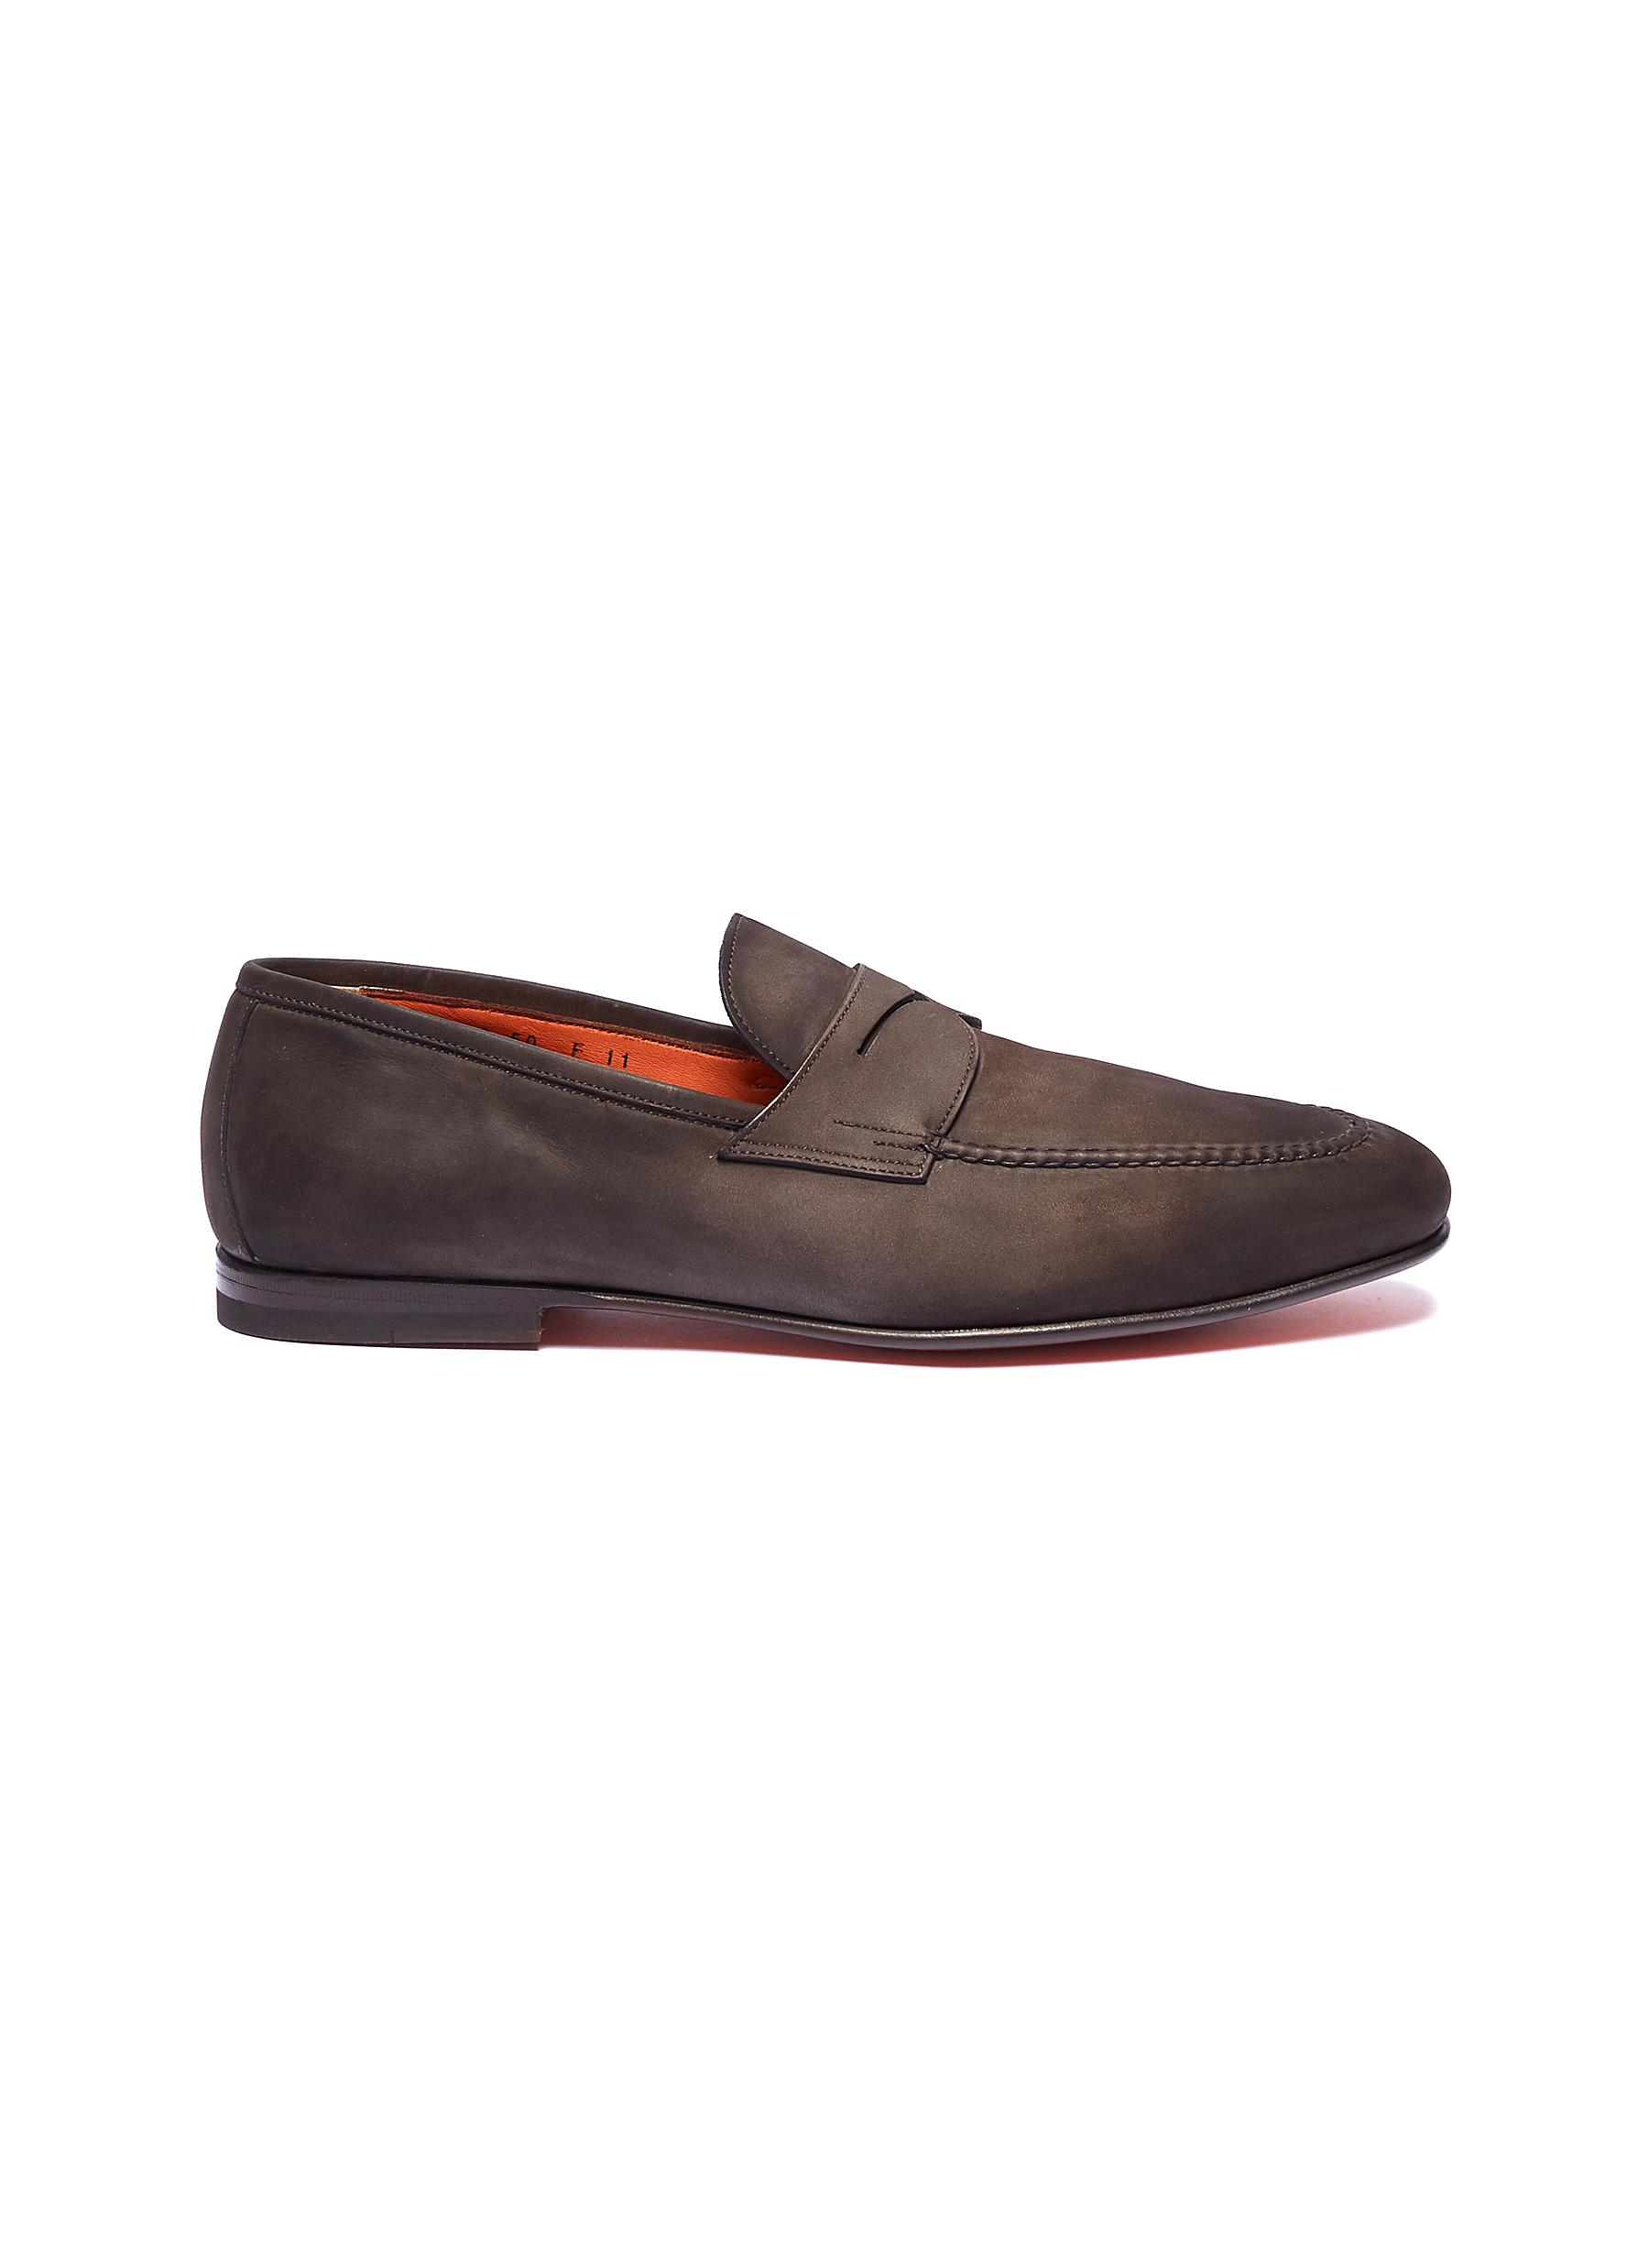 b10c3877078 Main View - Click To Enlarge - Santoni - Leather penny loafers